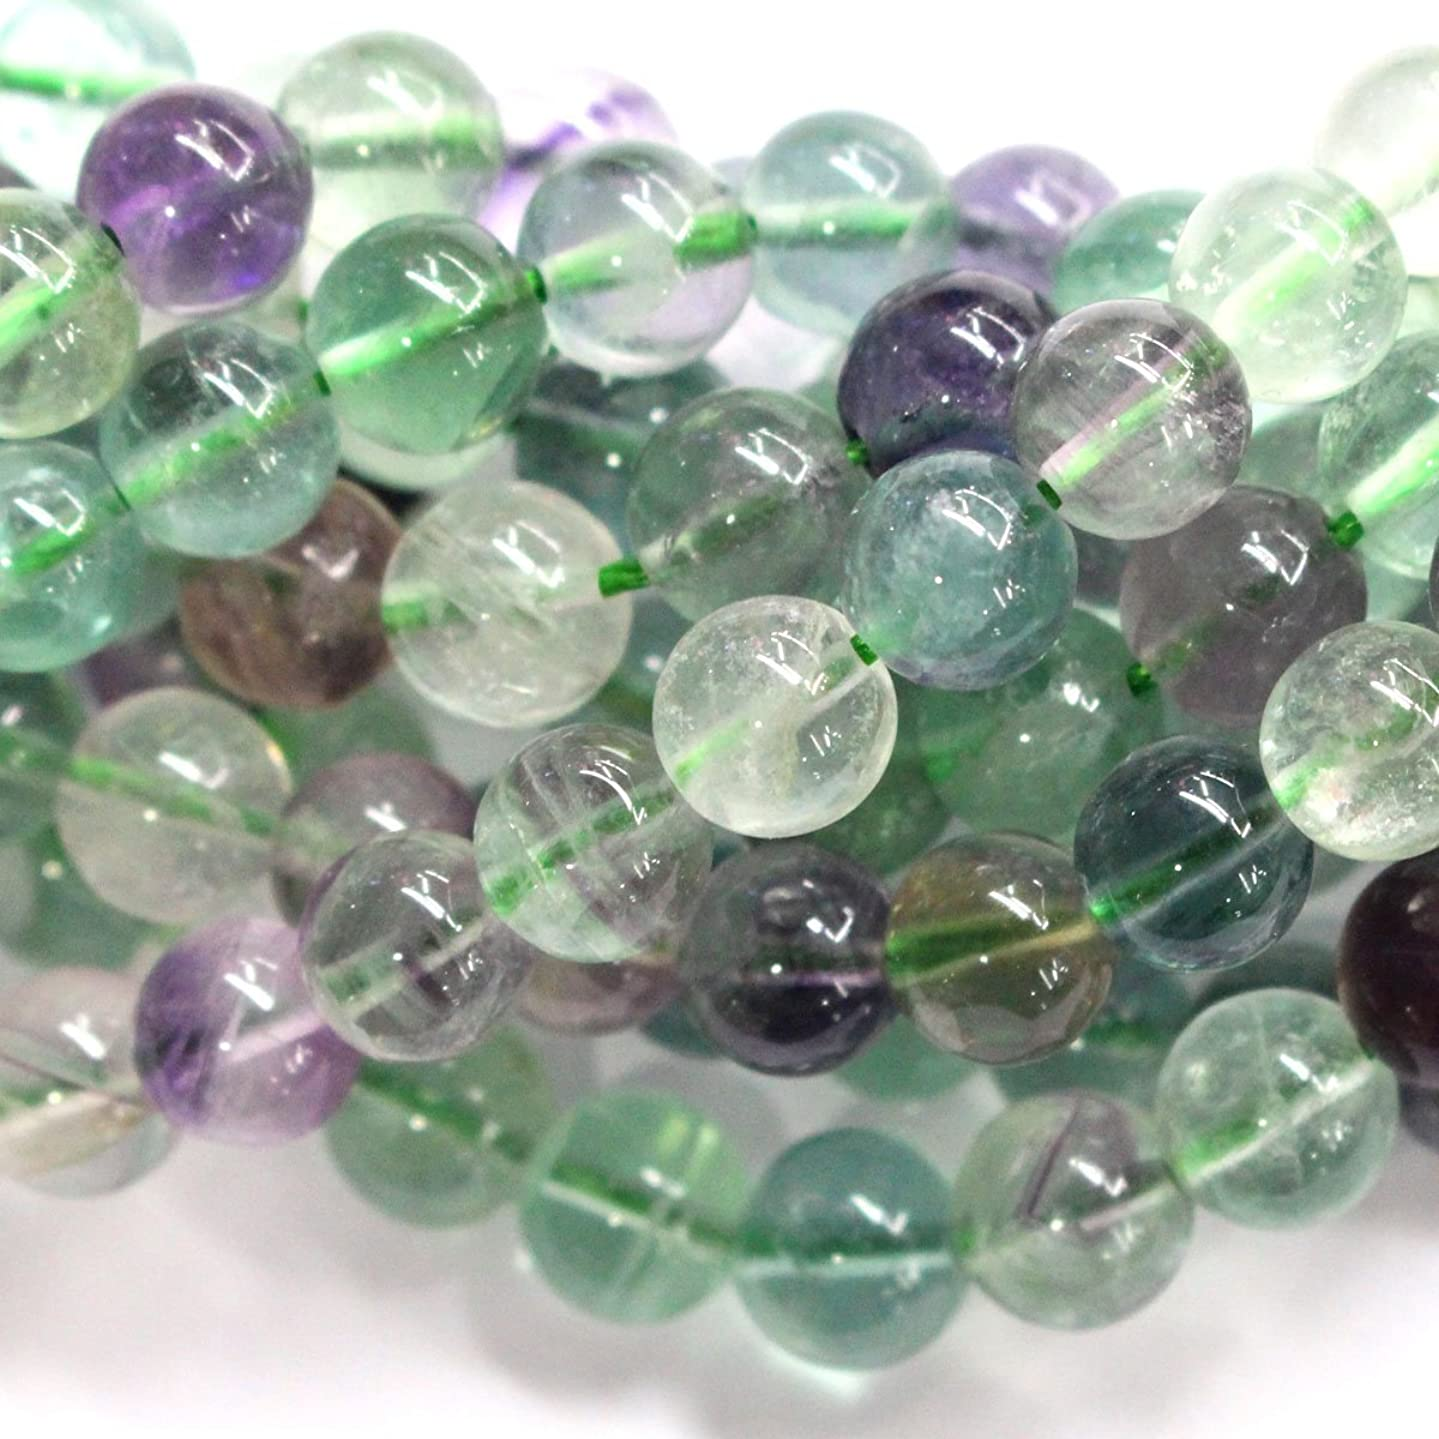 Natural Fluorite Round Findings Jewerlry Making Gemstone Beads (8mm)